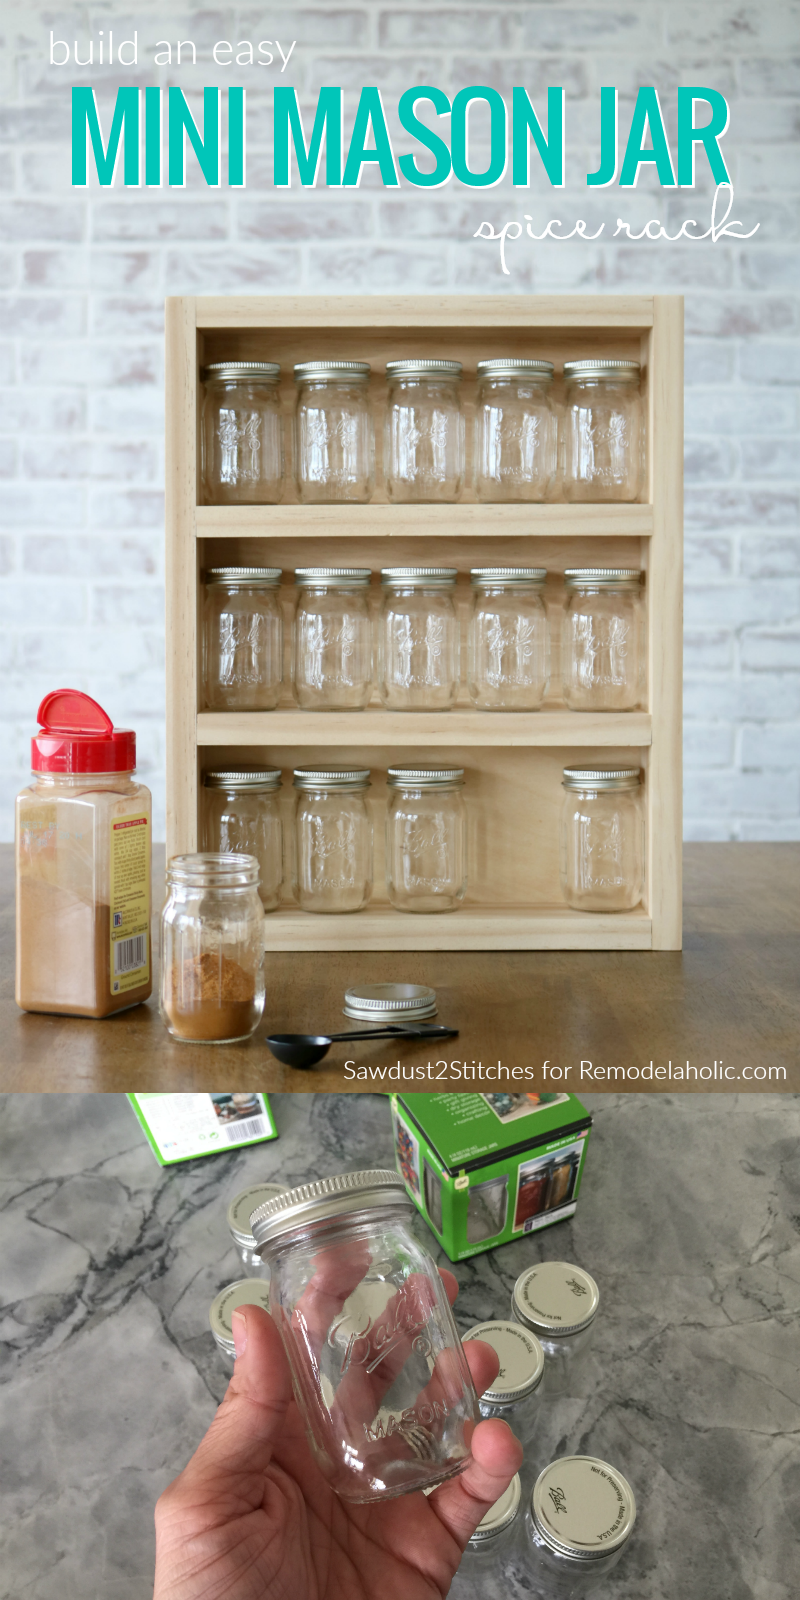 Remodelaholic Build A Mini Mason Jar Spice Rack